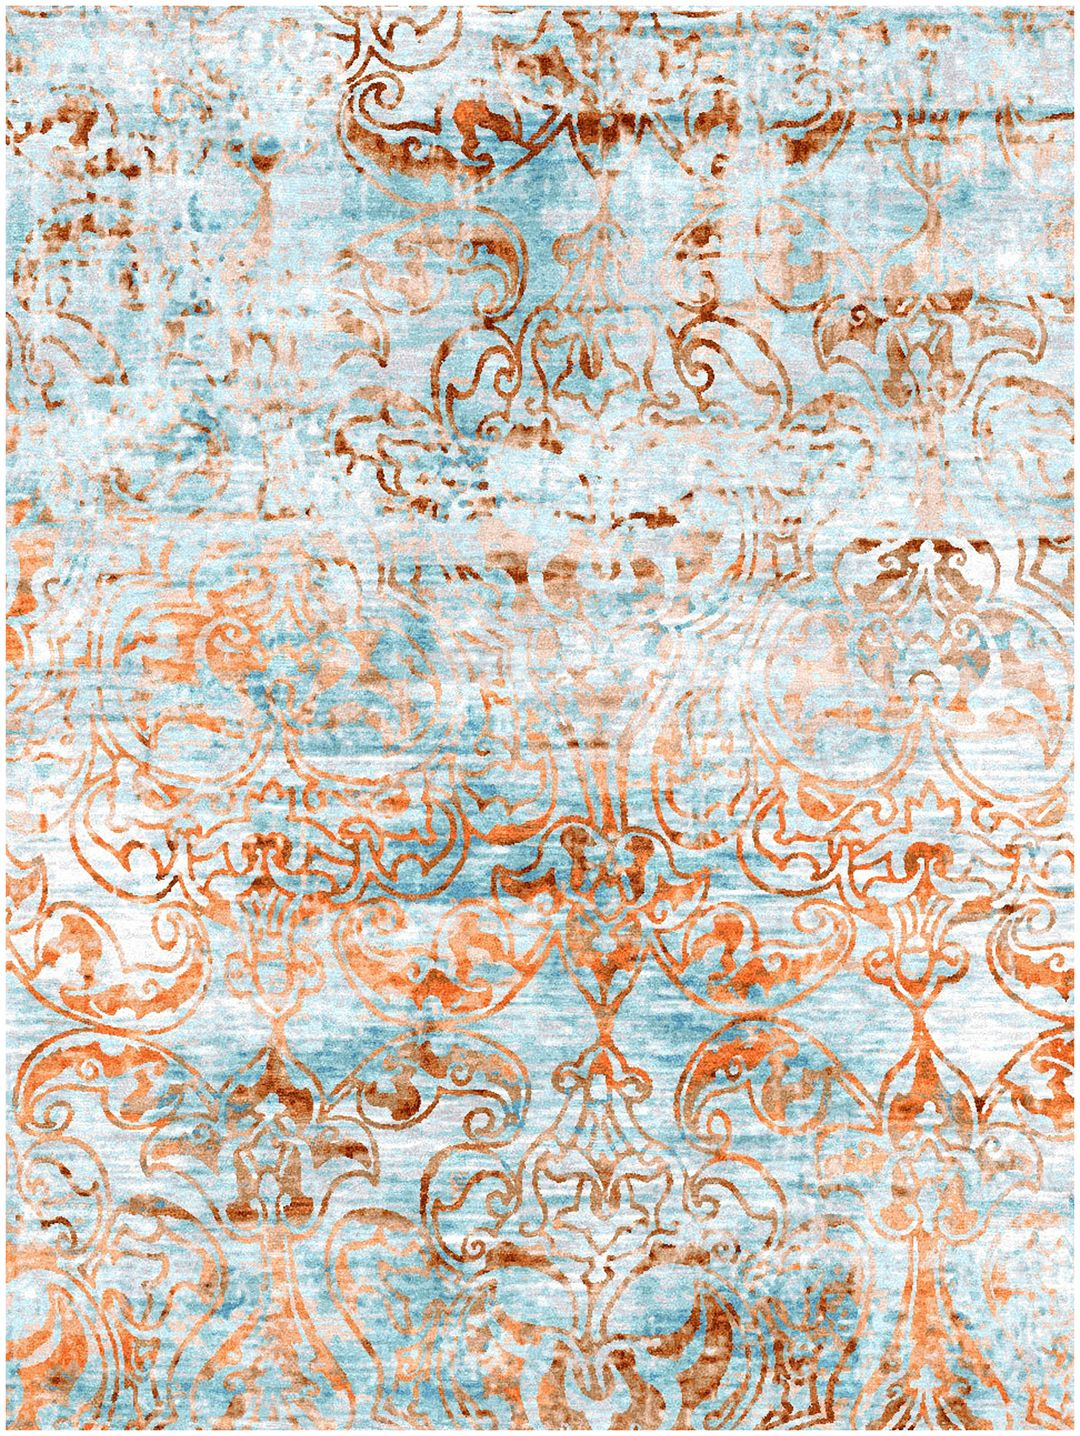 The Ottoman Ice Blue Orange Rugs From Luxurious Metallica Reserve Collection Of Contemporary Feature